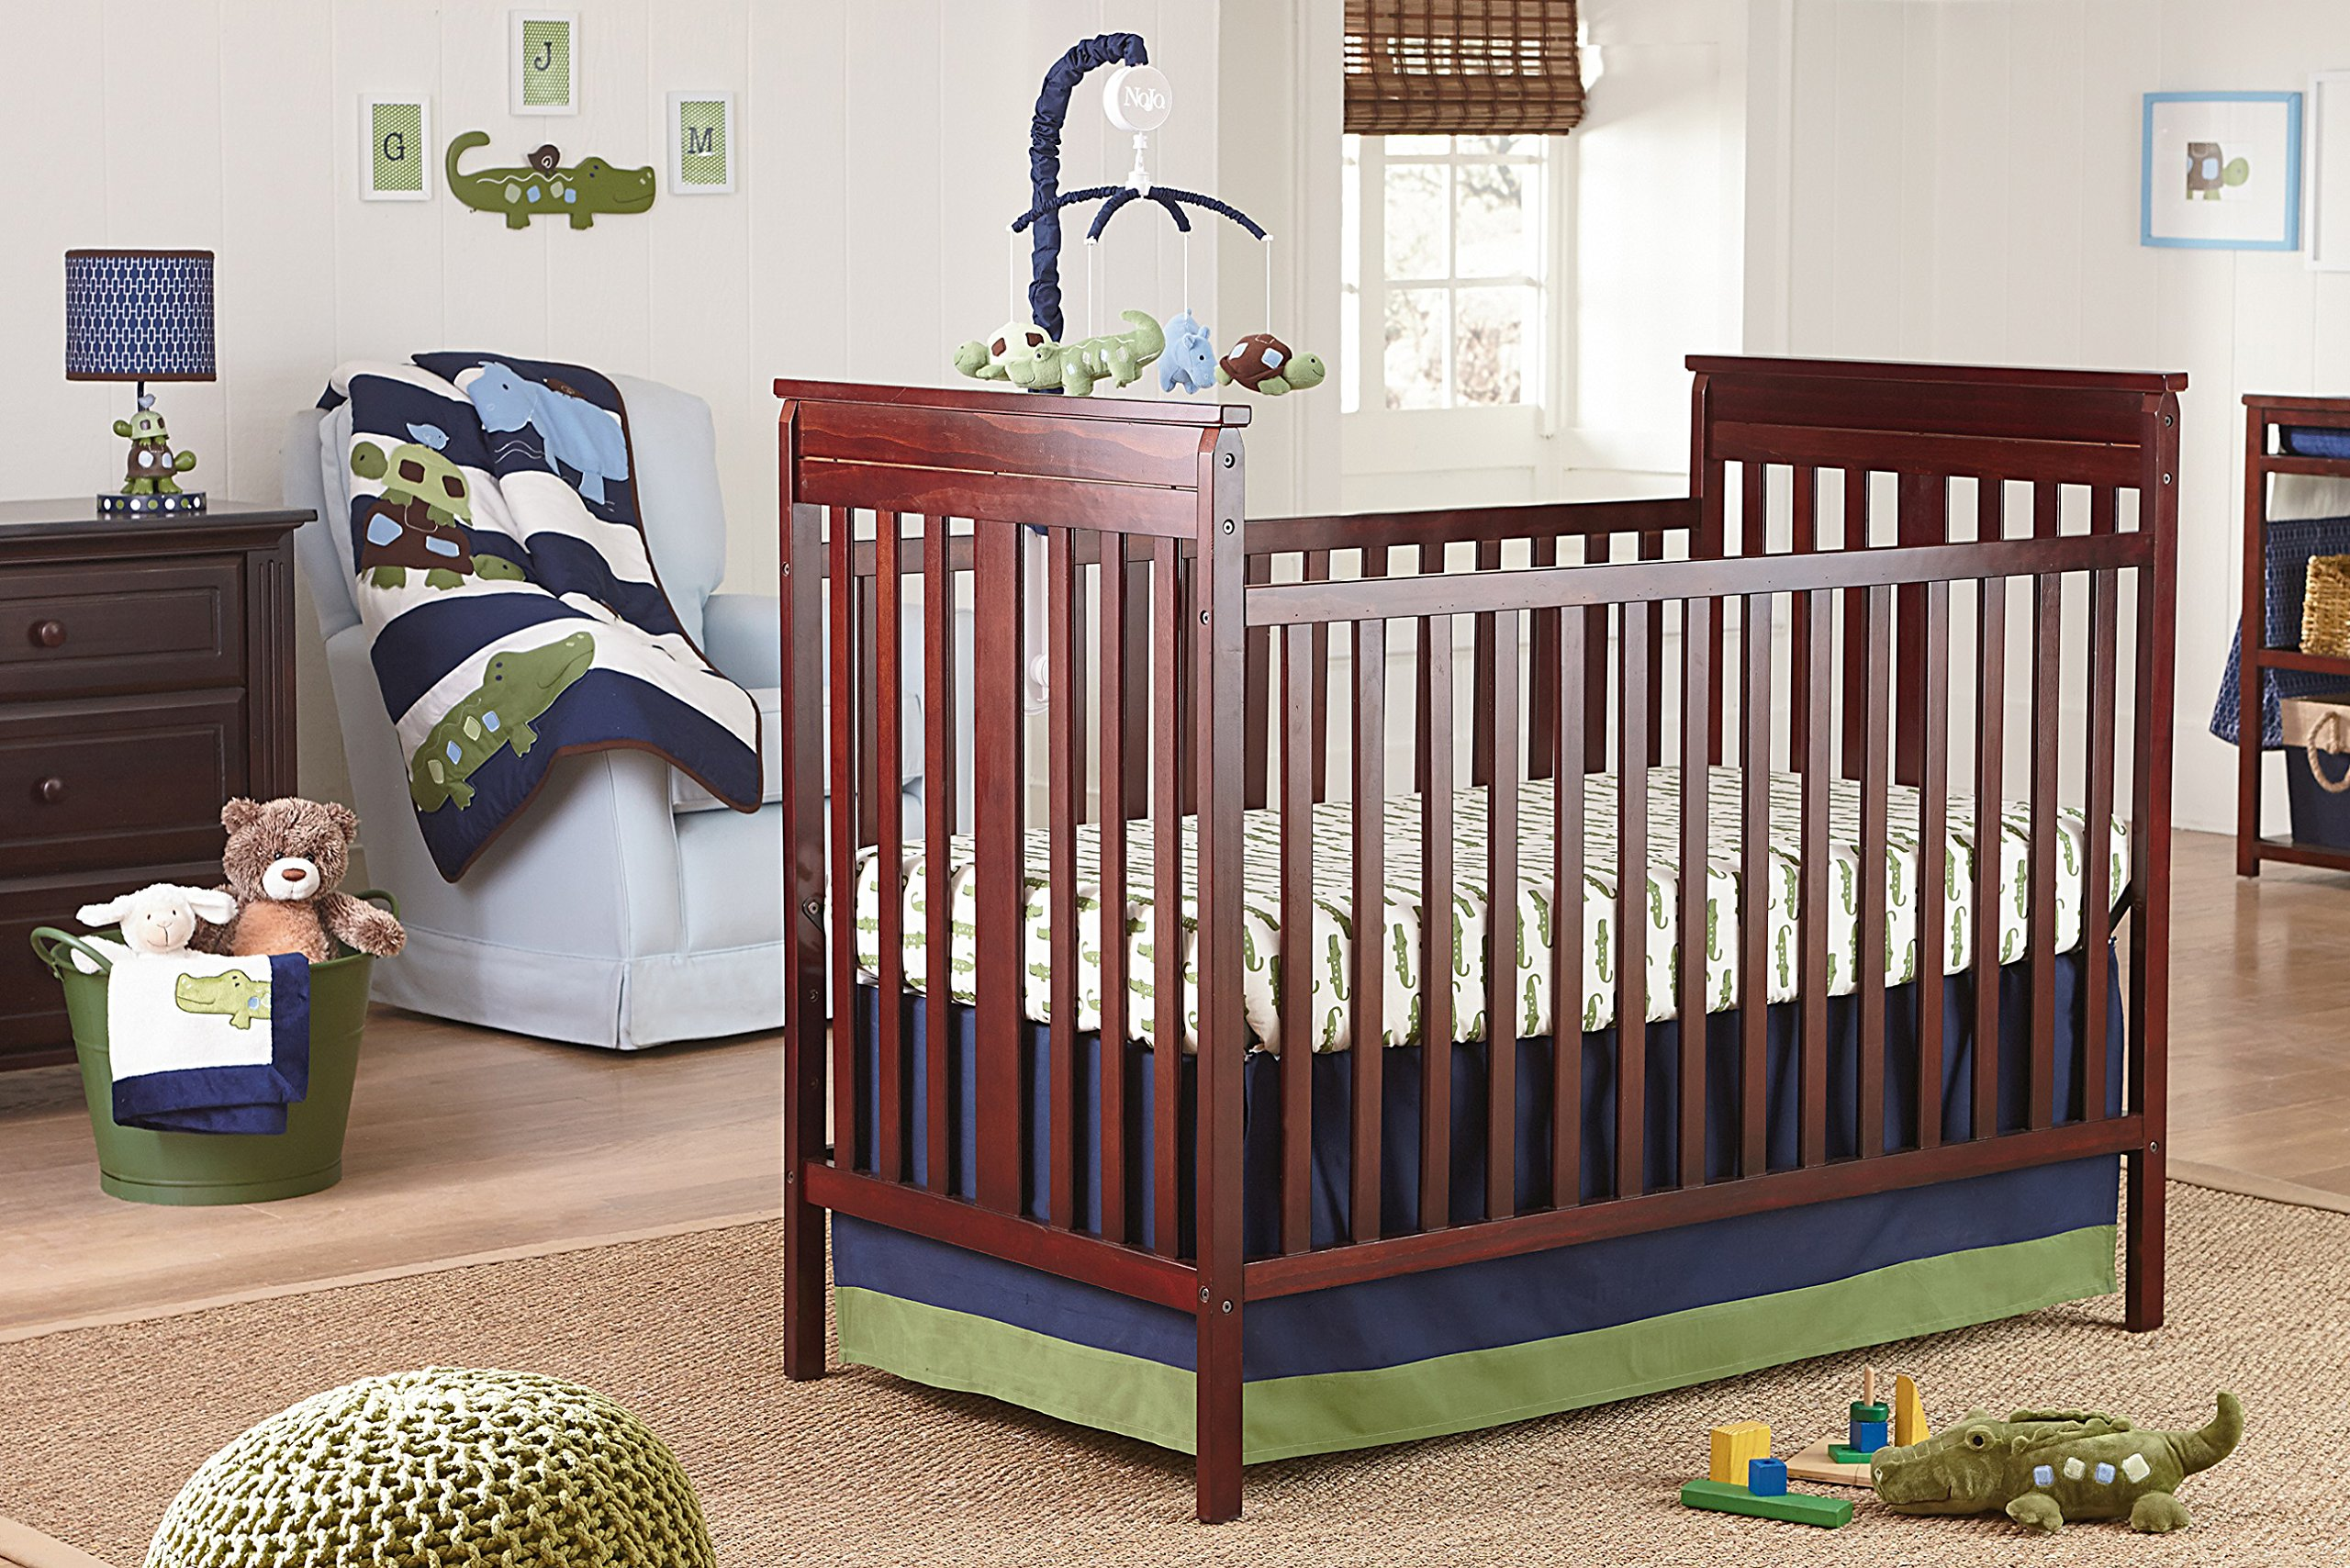 NoJo Alligator Blues 4 Piece Crib Set